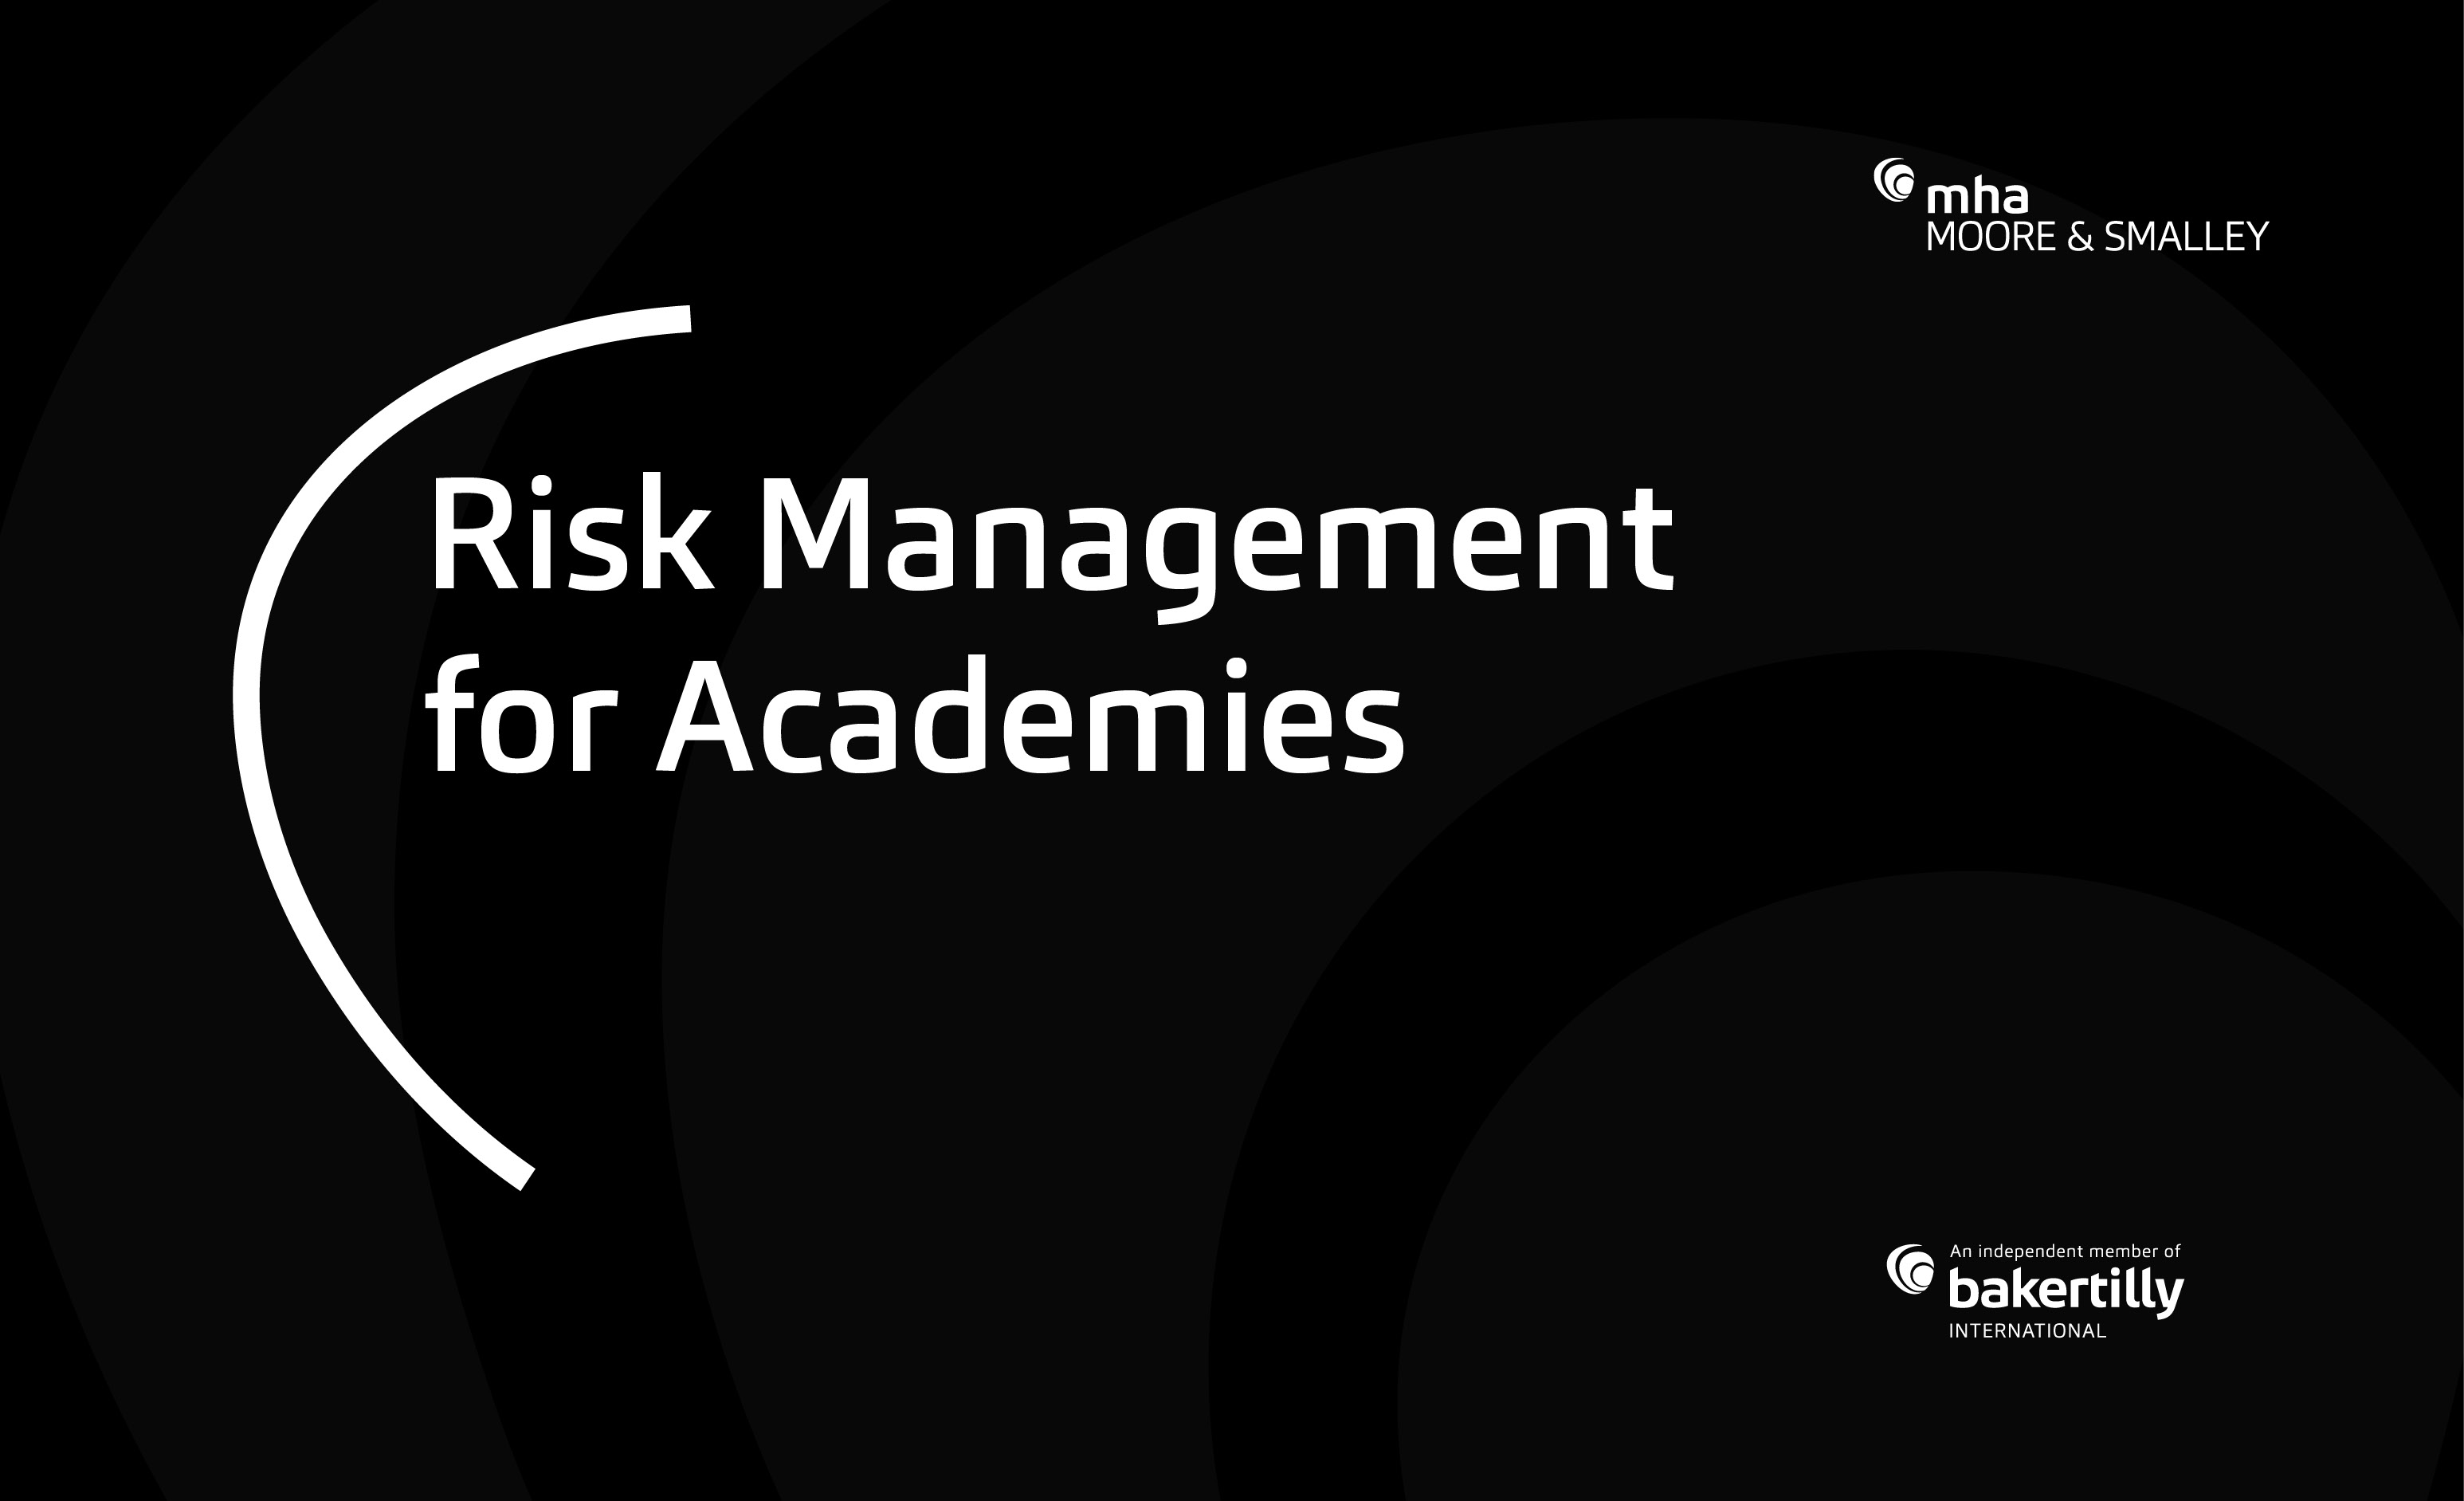 Risk Management for Academies